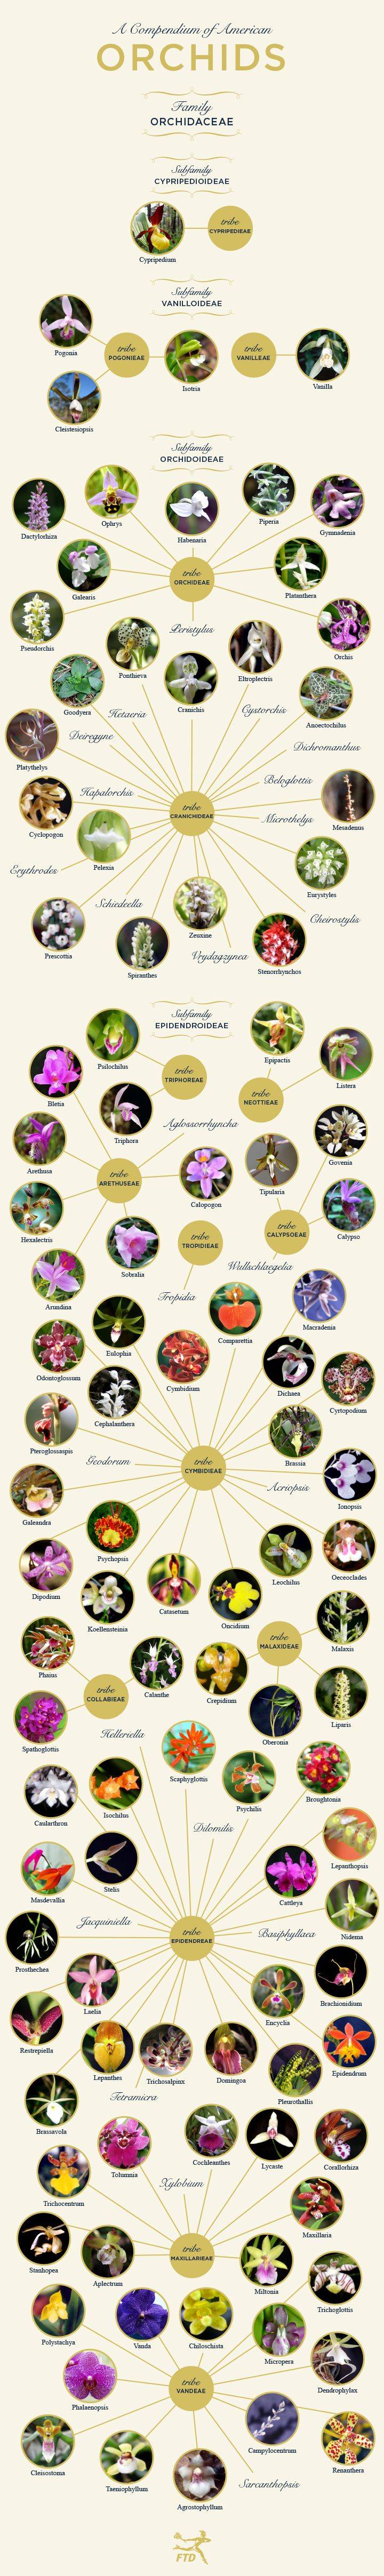 Types of Orchids: A Visual Compendium | Types of orchids ...